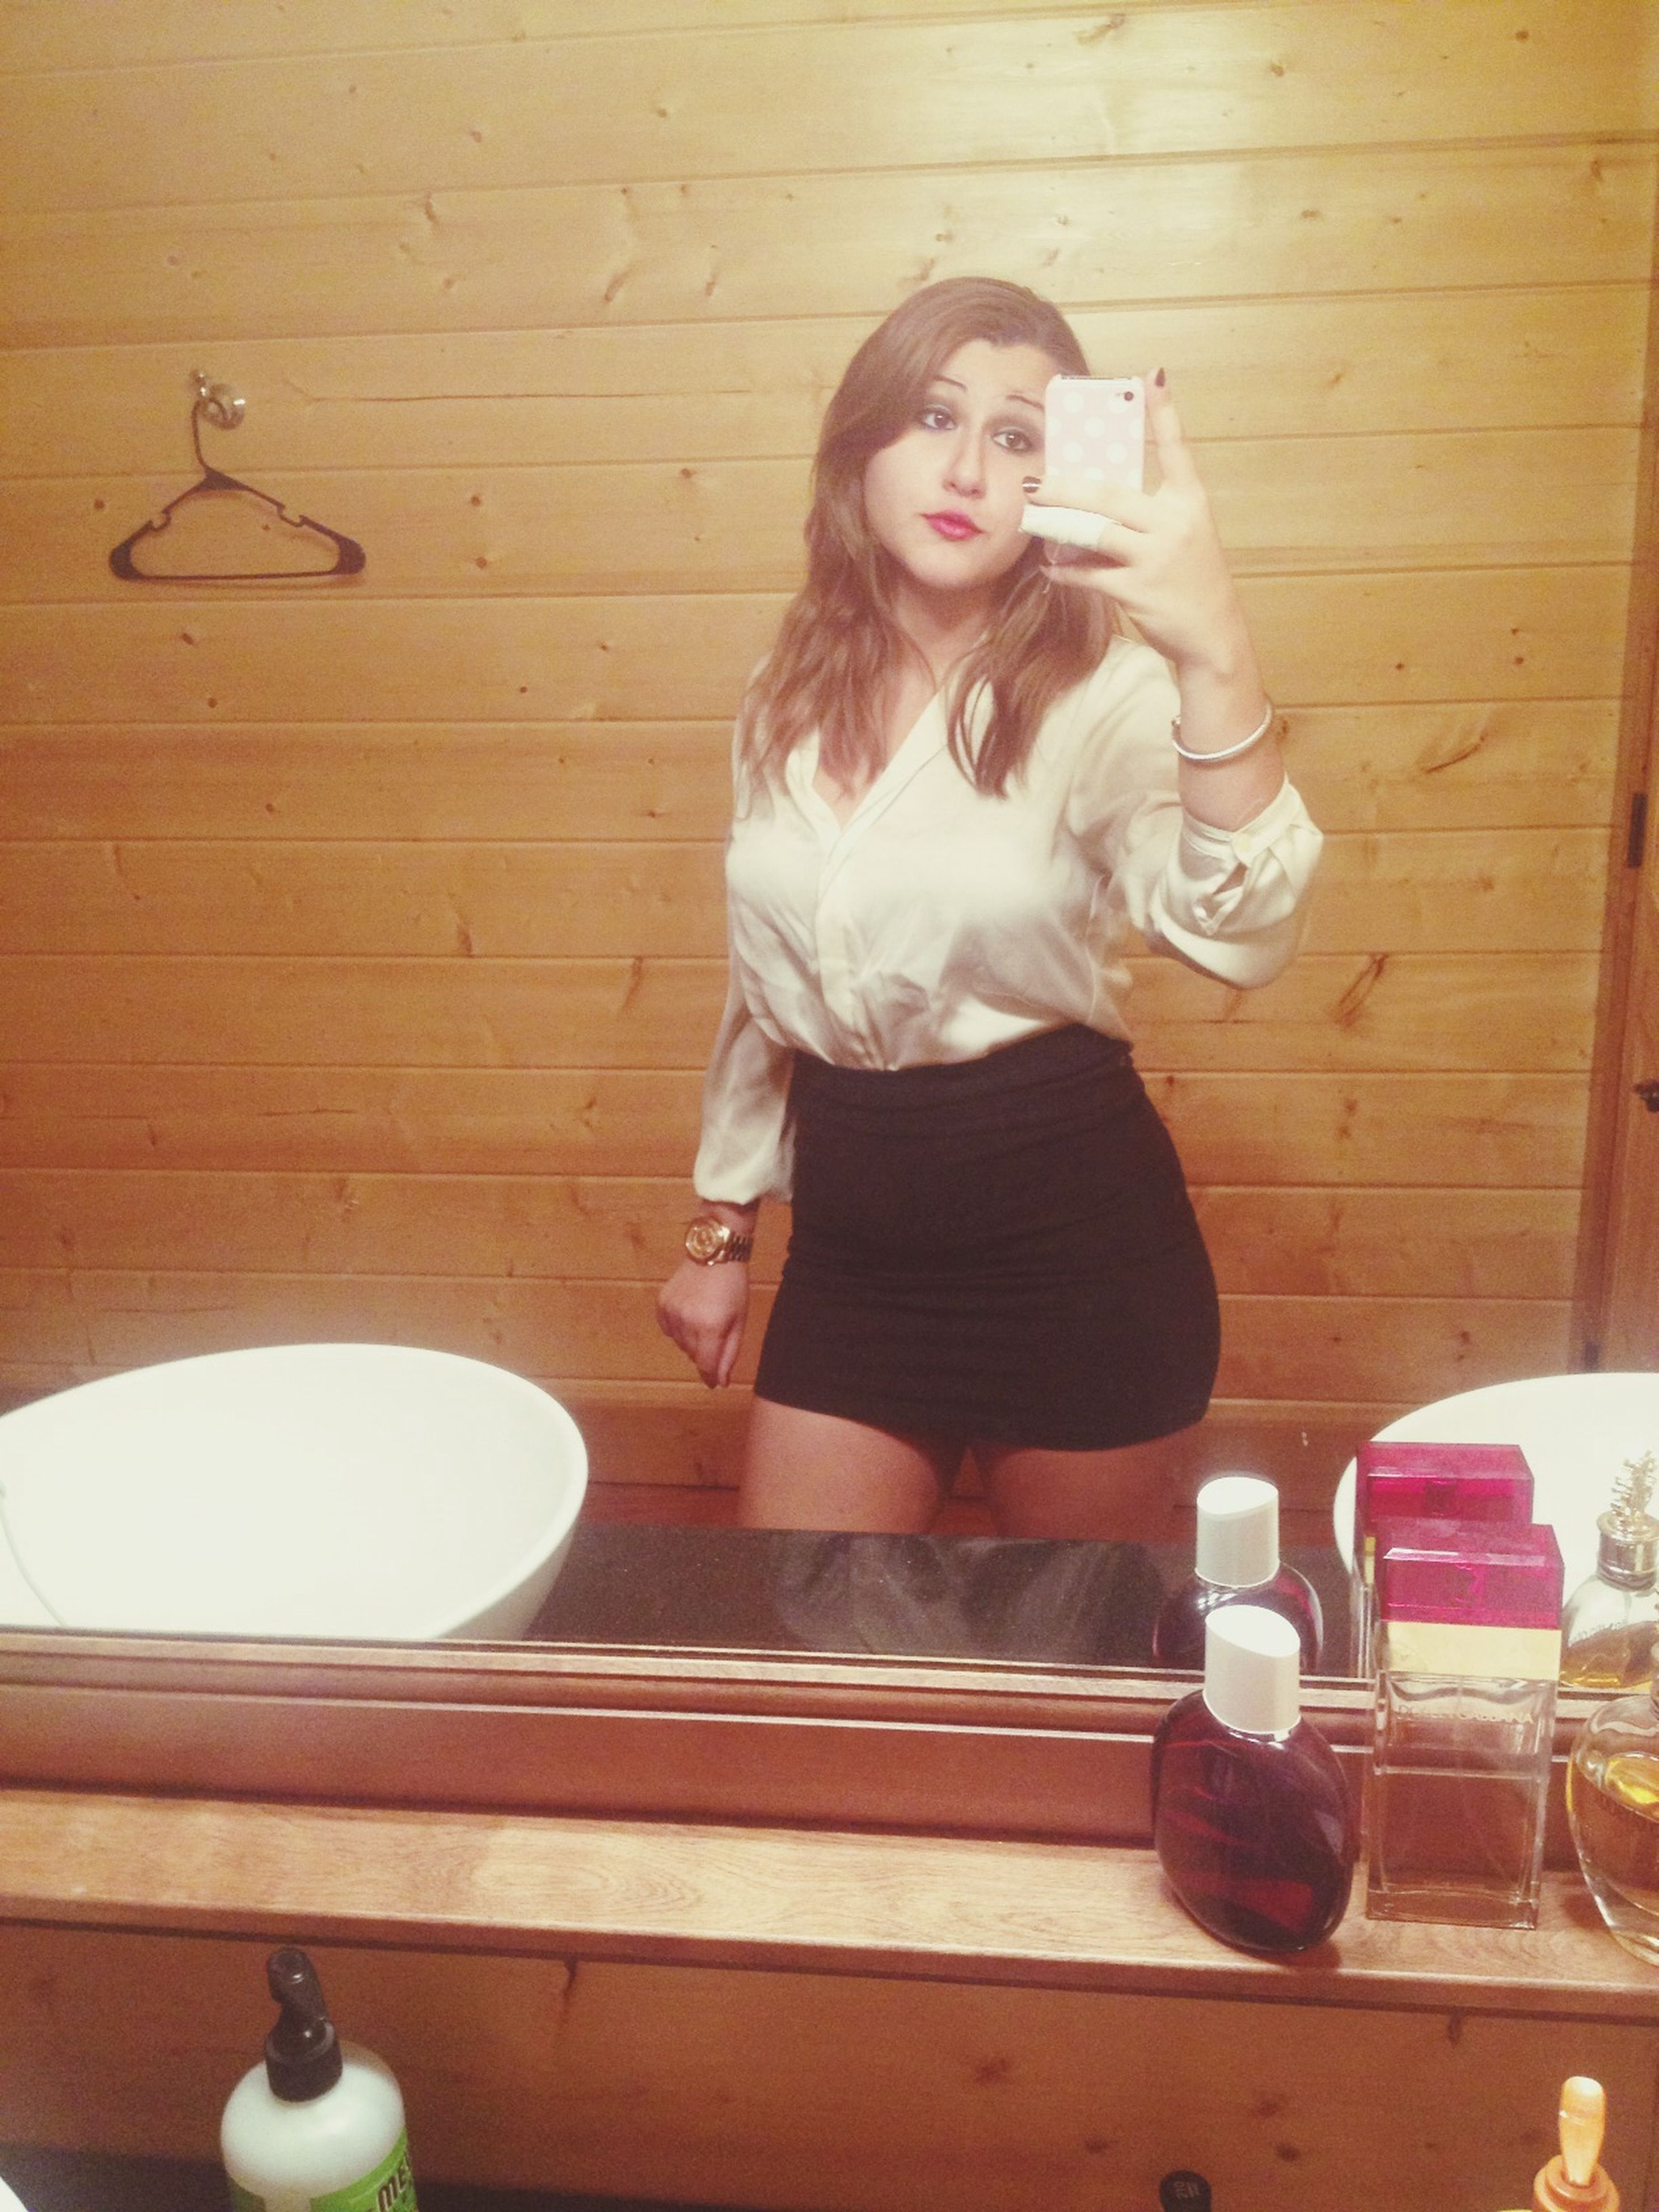 indoors, full length, home interior, casual clothing, standing, person, sitting, wood - material, lifestyles, leisure activity, wall - building feature, childhood, three quarter length, mirror, front view, door, side view, day